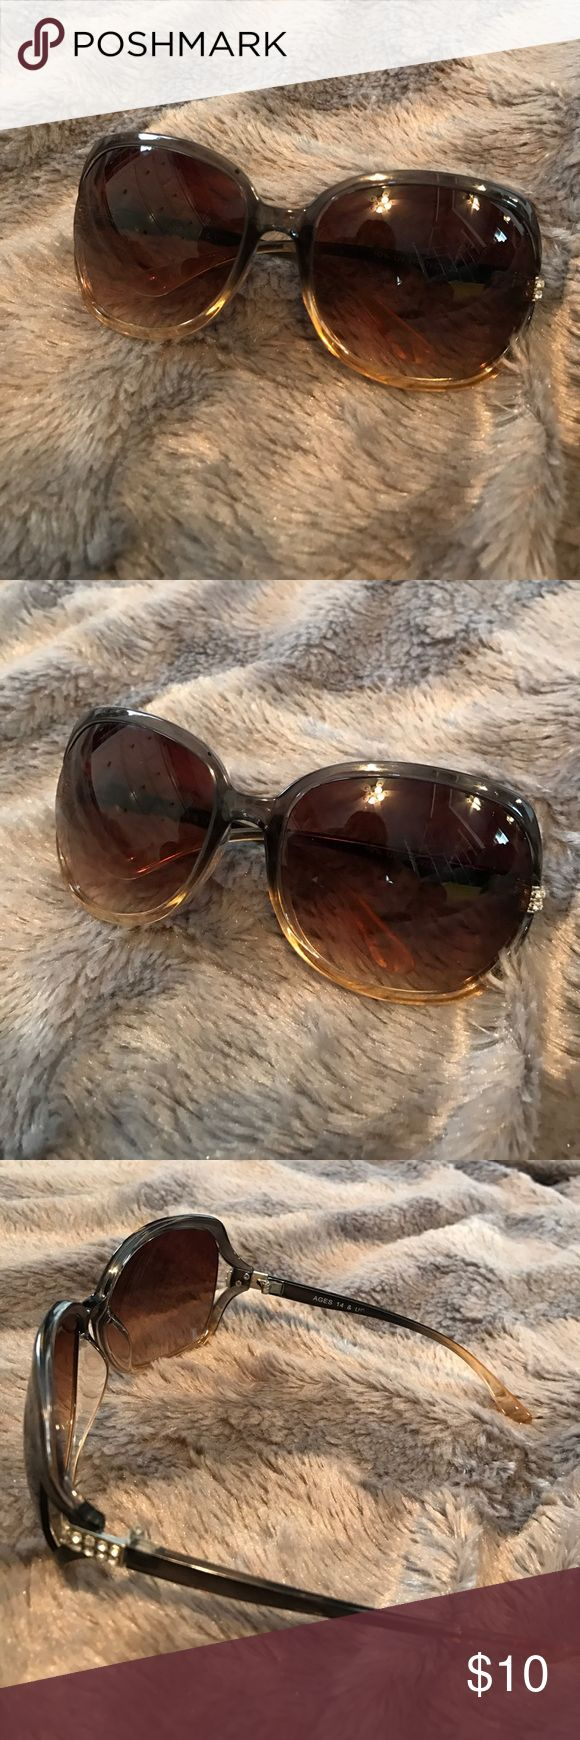 Brown Ombré Round Sunglasses Women's sunglasses. Silver jewel detailing on side. 2 minor scuff marks on lens-- not very noticeable. In good condition Accessories Sunglasses